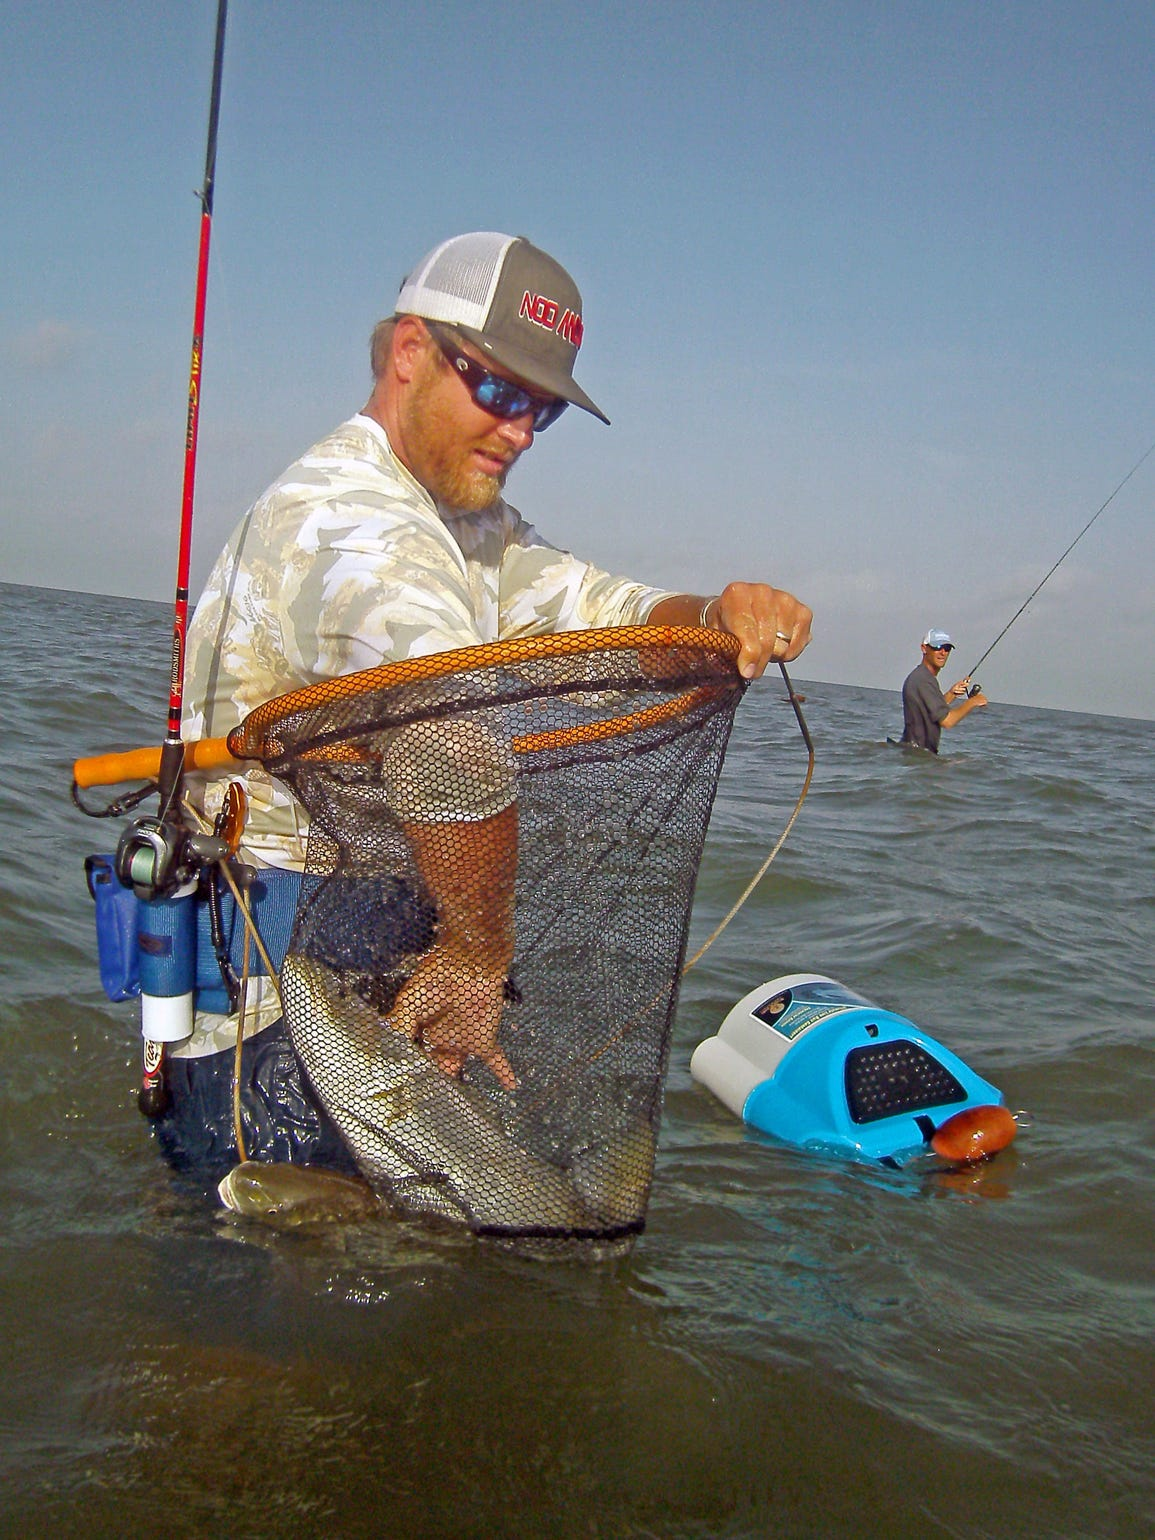 If you use live bait, you'll need a submersible bait